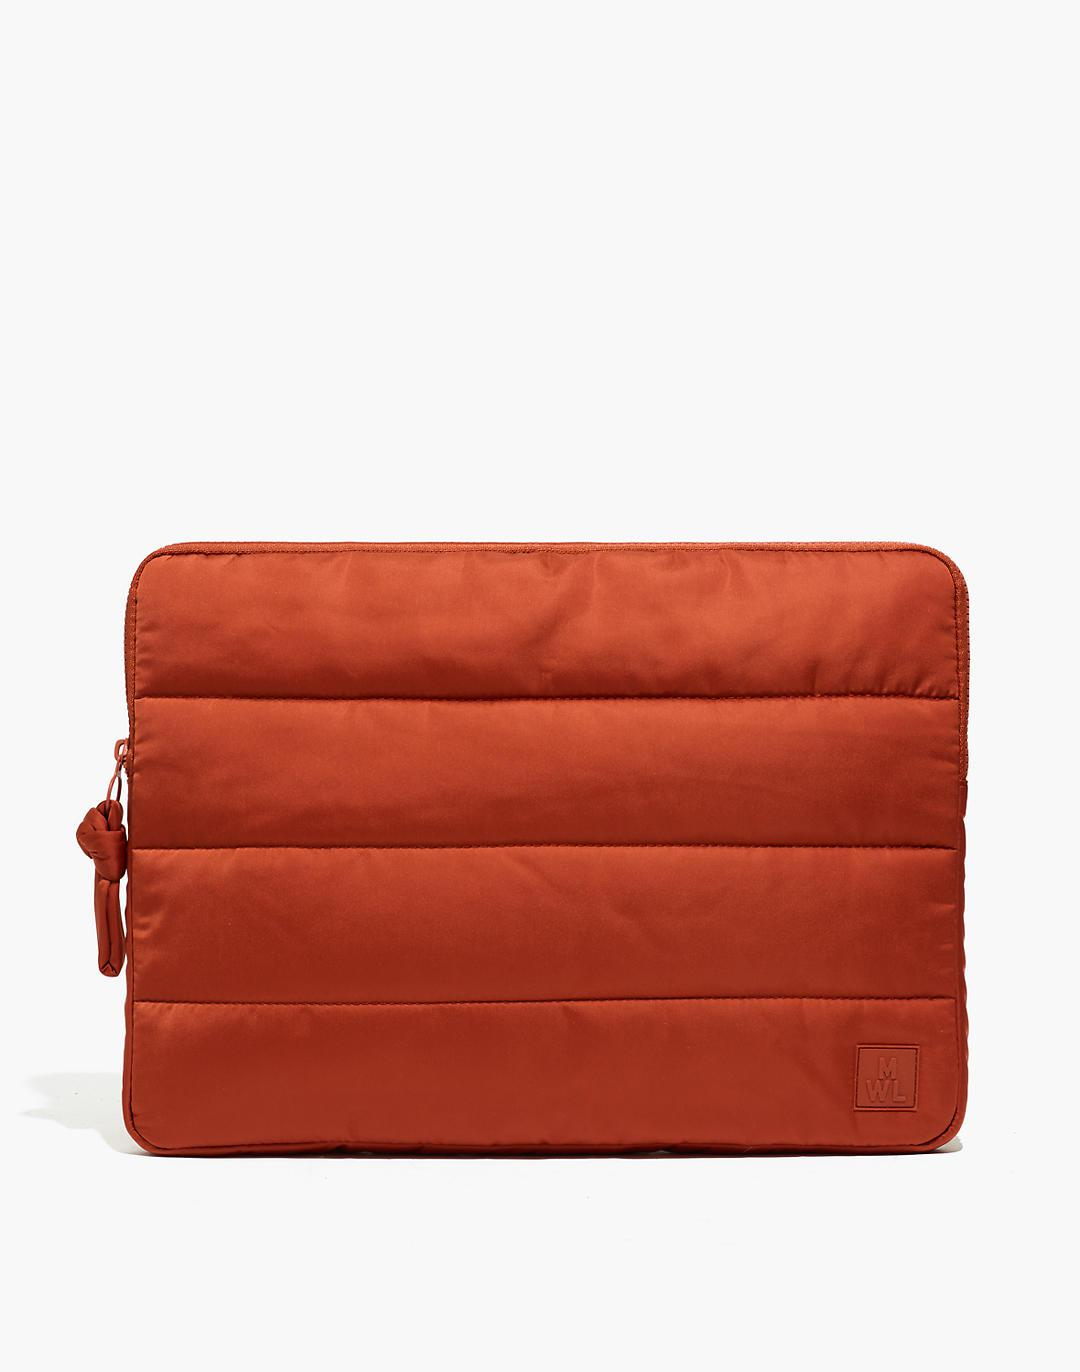 The Quilted Laptop Case